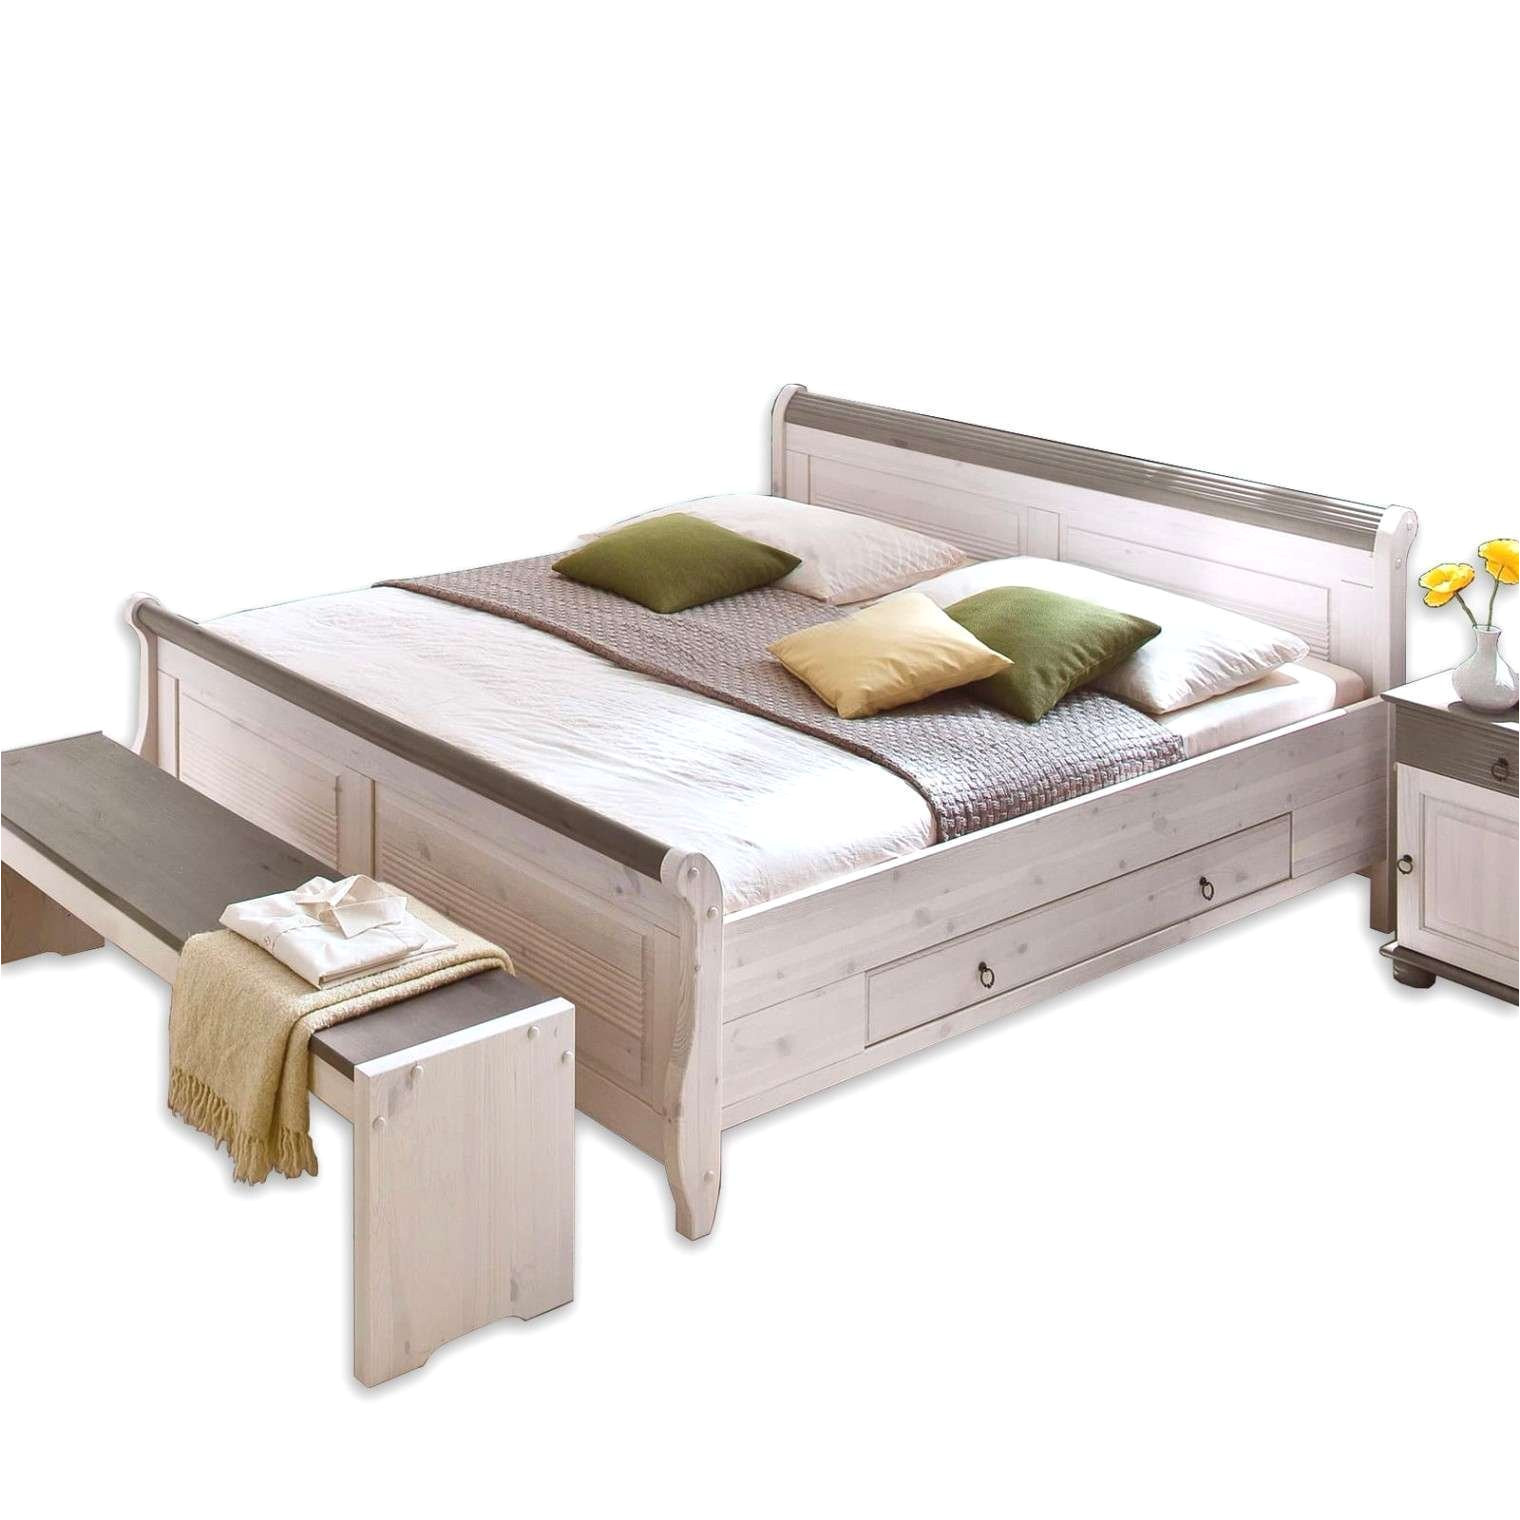 Fjellse Double Bed Frame Review Adinaporter